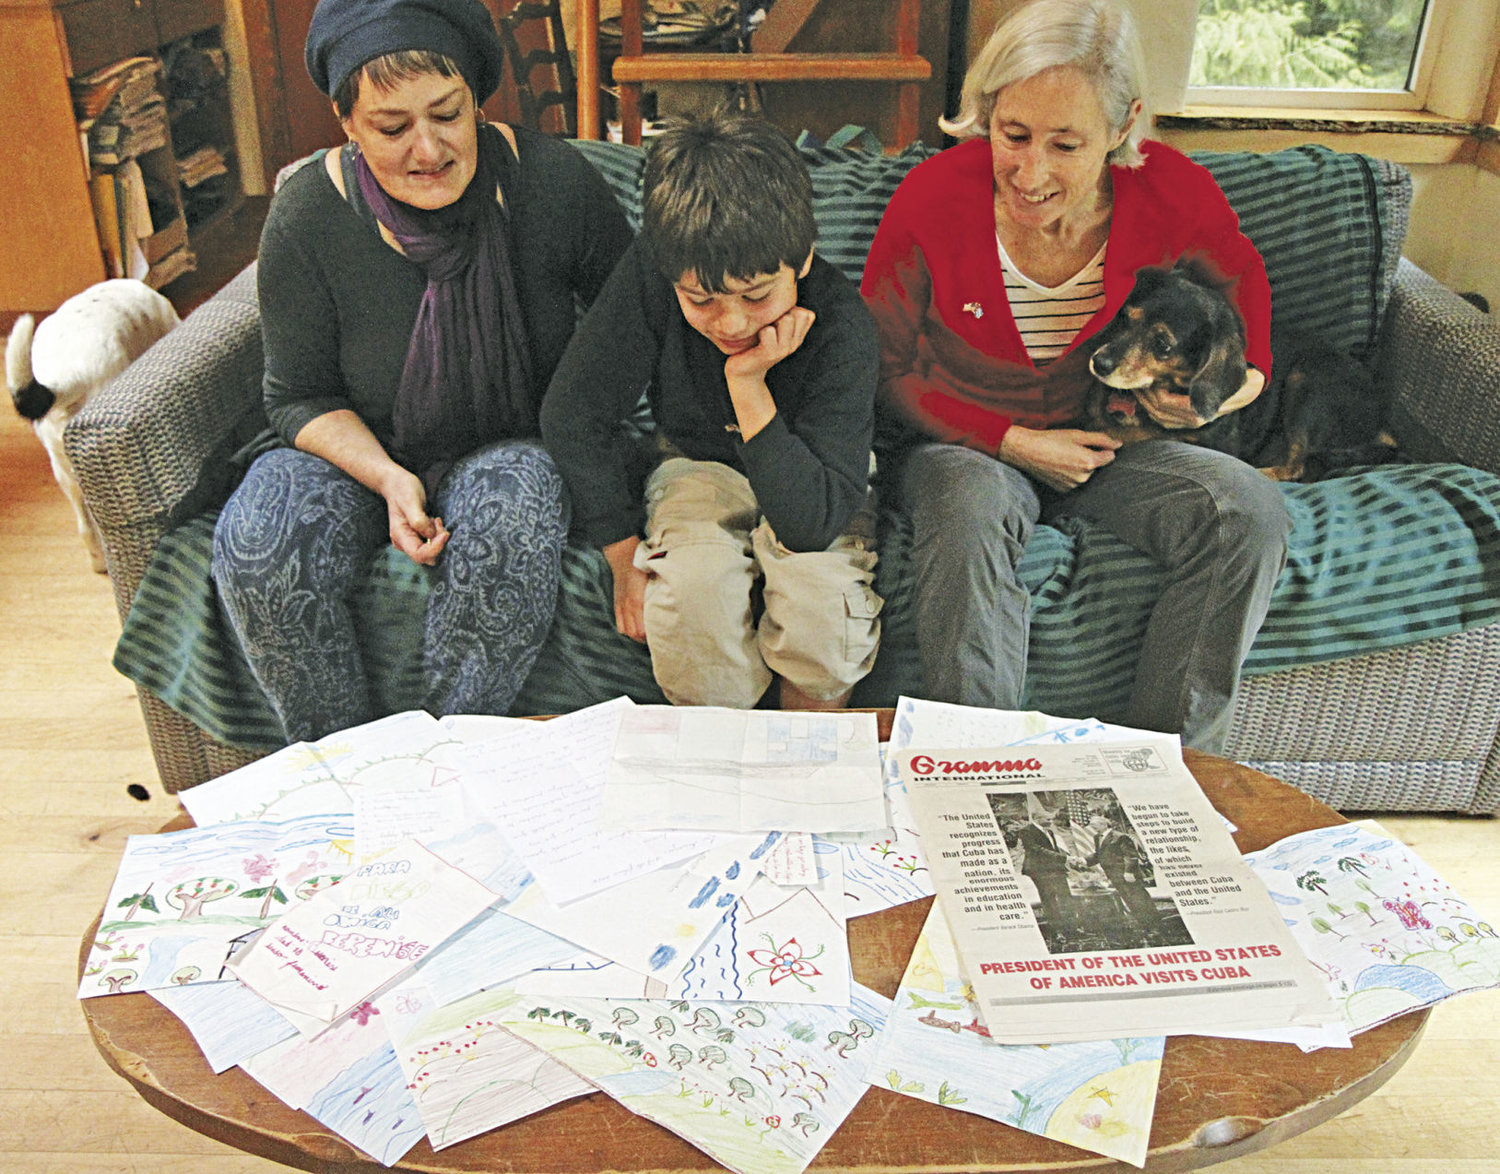 Lorena Murray (left) and her son, Diego Garcia, with Chimacum neighbor Heather Harding look over artwork that has been sent to Garcia thanks to Harding, a travel guide. Murray and Harding help translate the letters from Spanish for Garcia. Photo by Allison Arthur